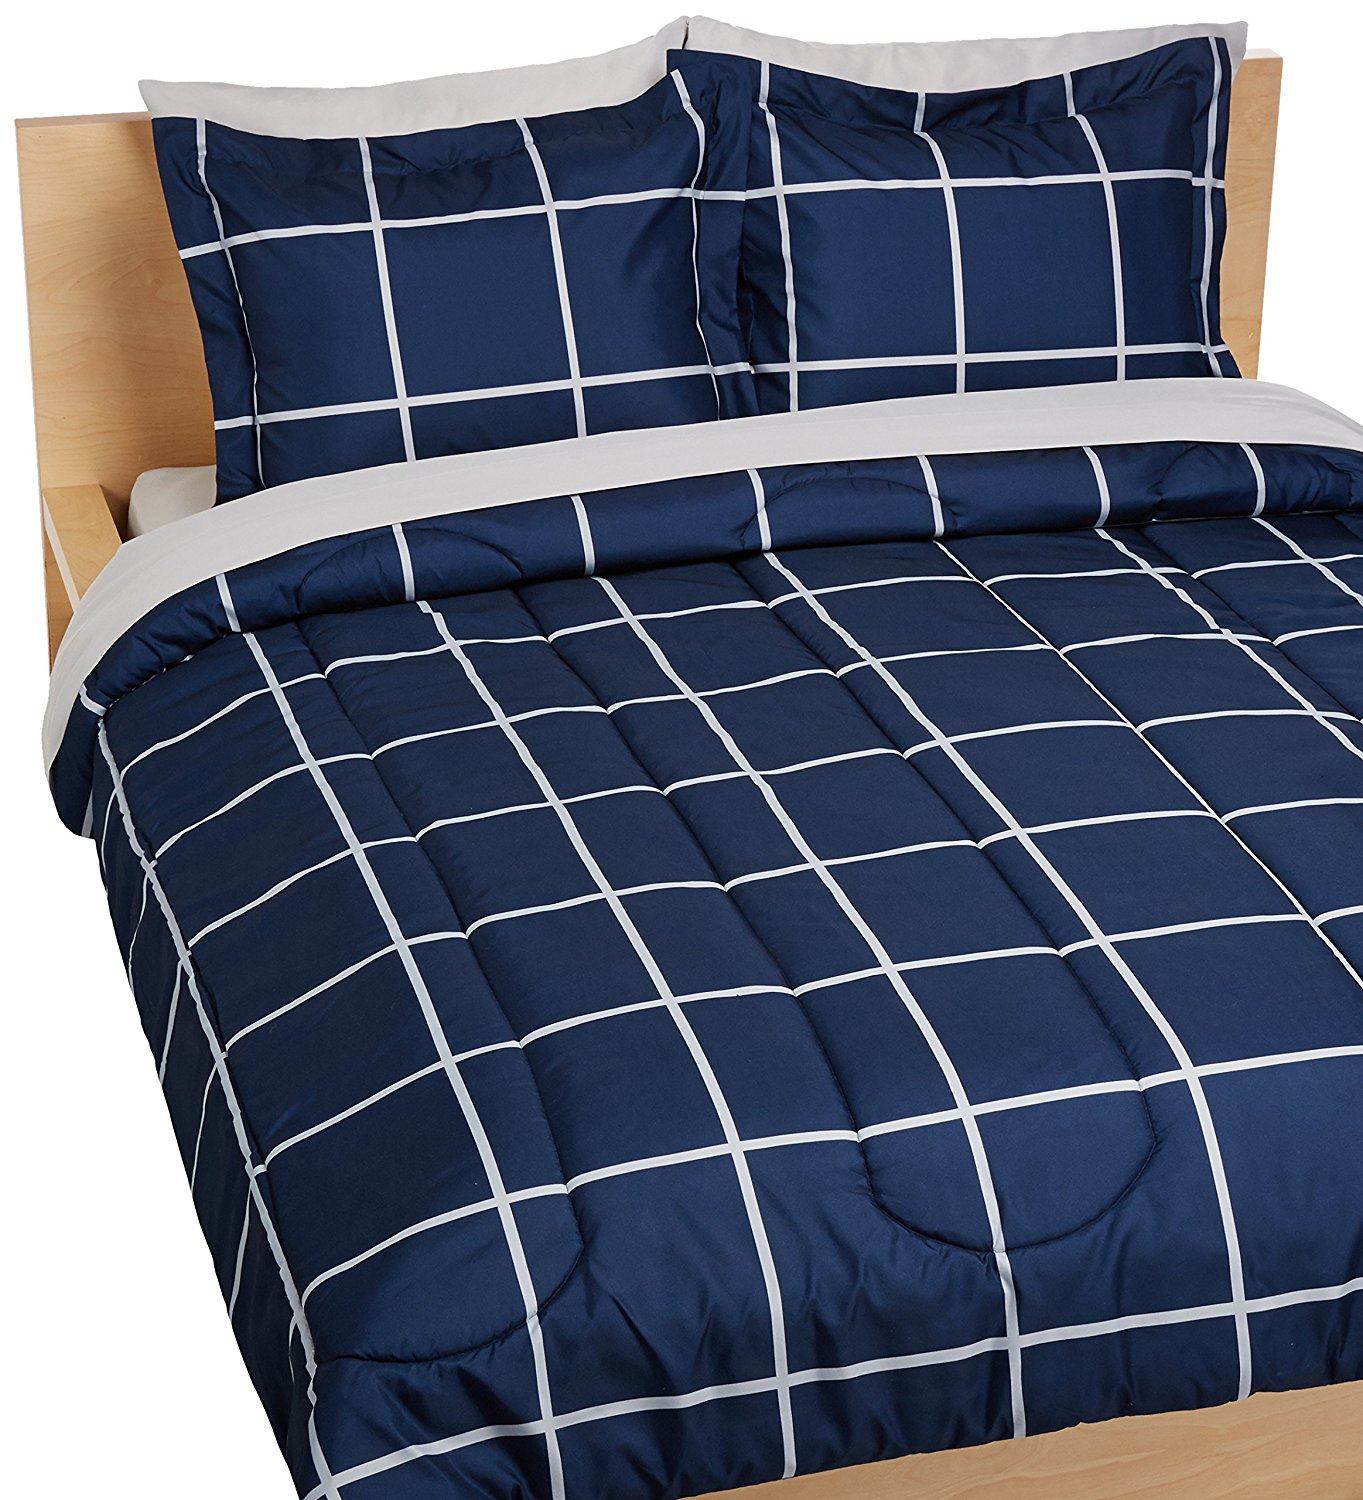 AmazonBasics Bed in a Bag Bedding 7 Piece Bed In A Bag